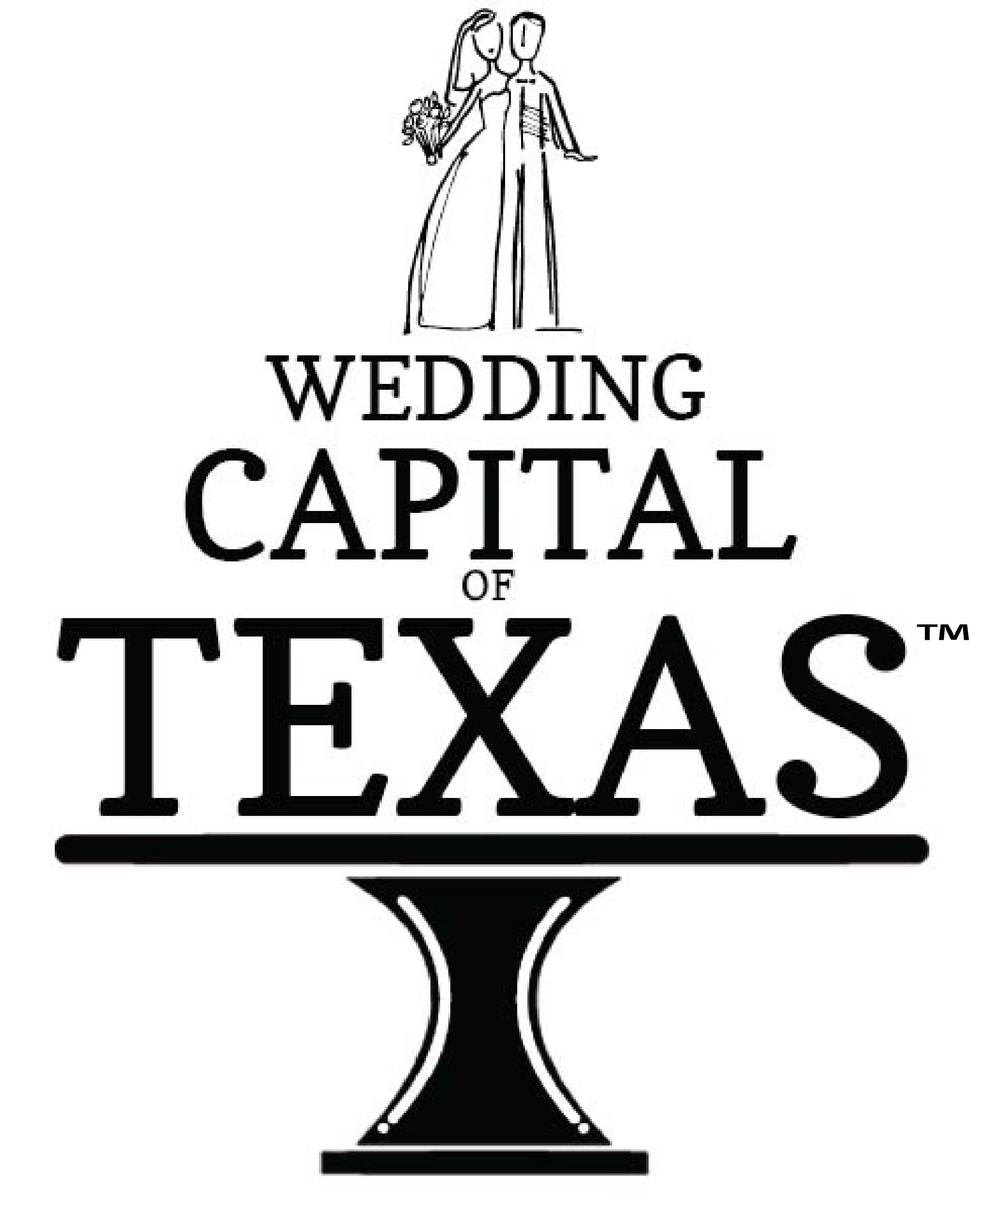 weddingcapitaloftexas